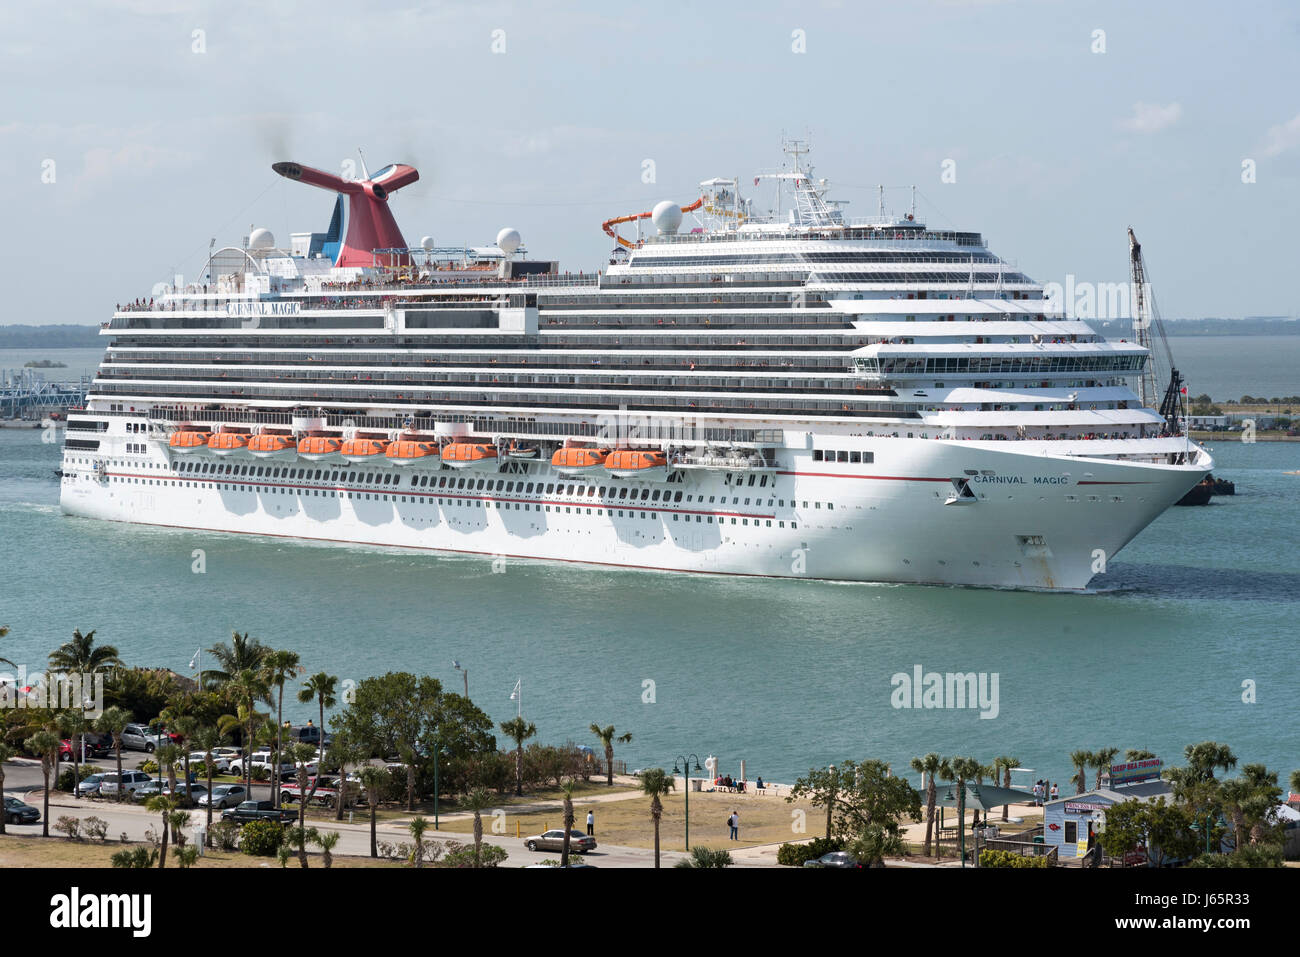 Crusie ship stock photos crusie ship stock images alamy - Port canaveral cruise lines ...